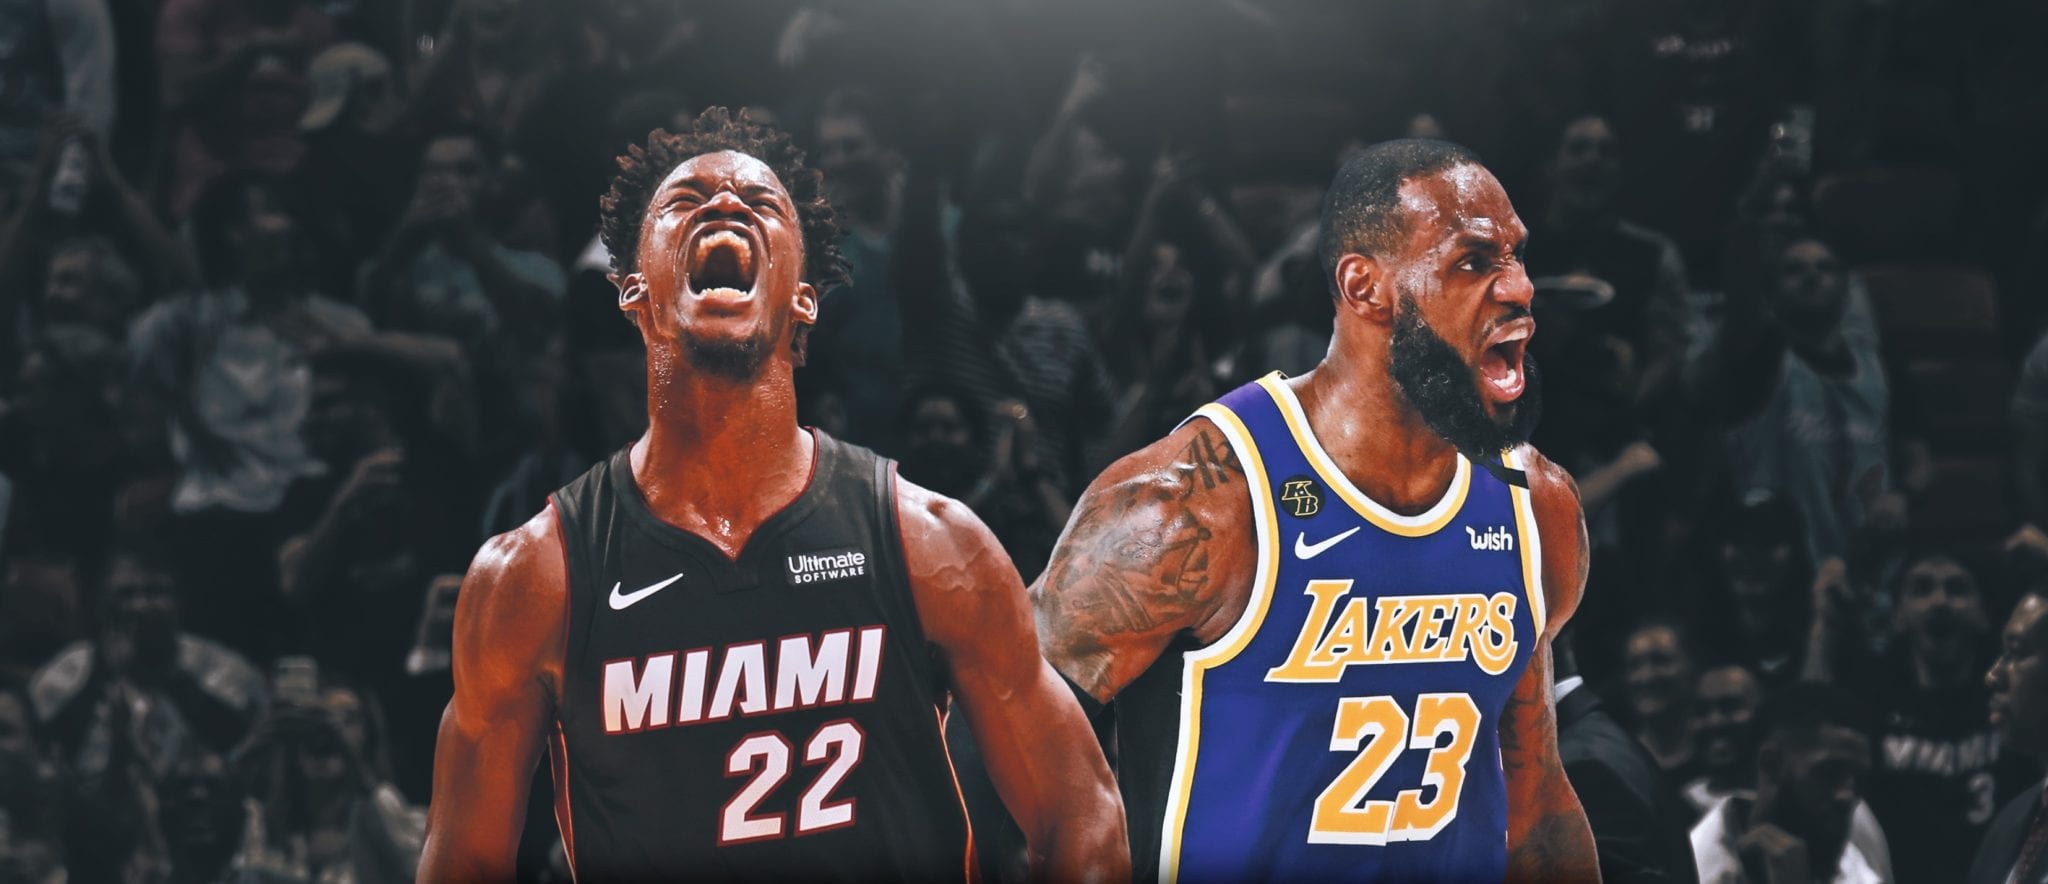 NBA Players React to Heat Making Finals to Face Lakers